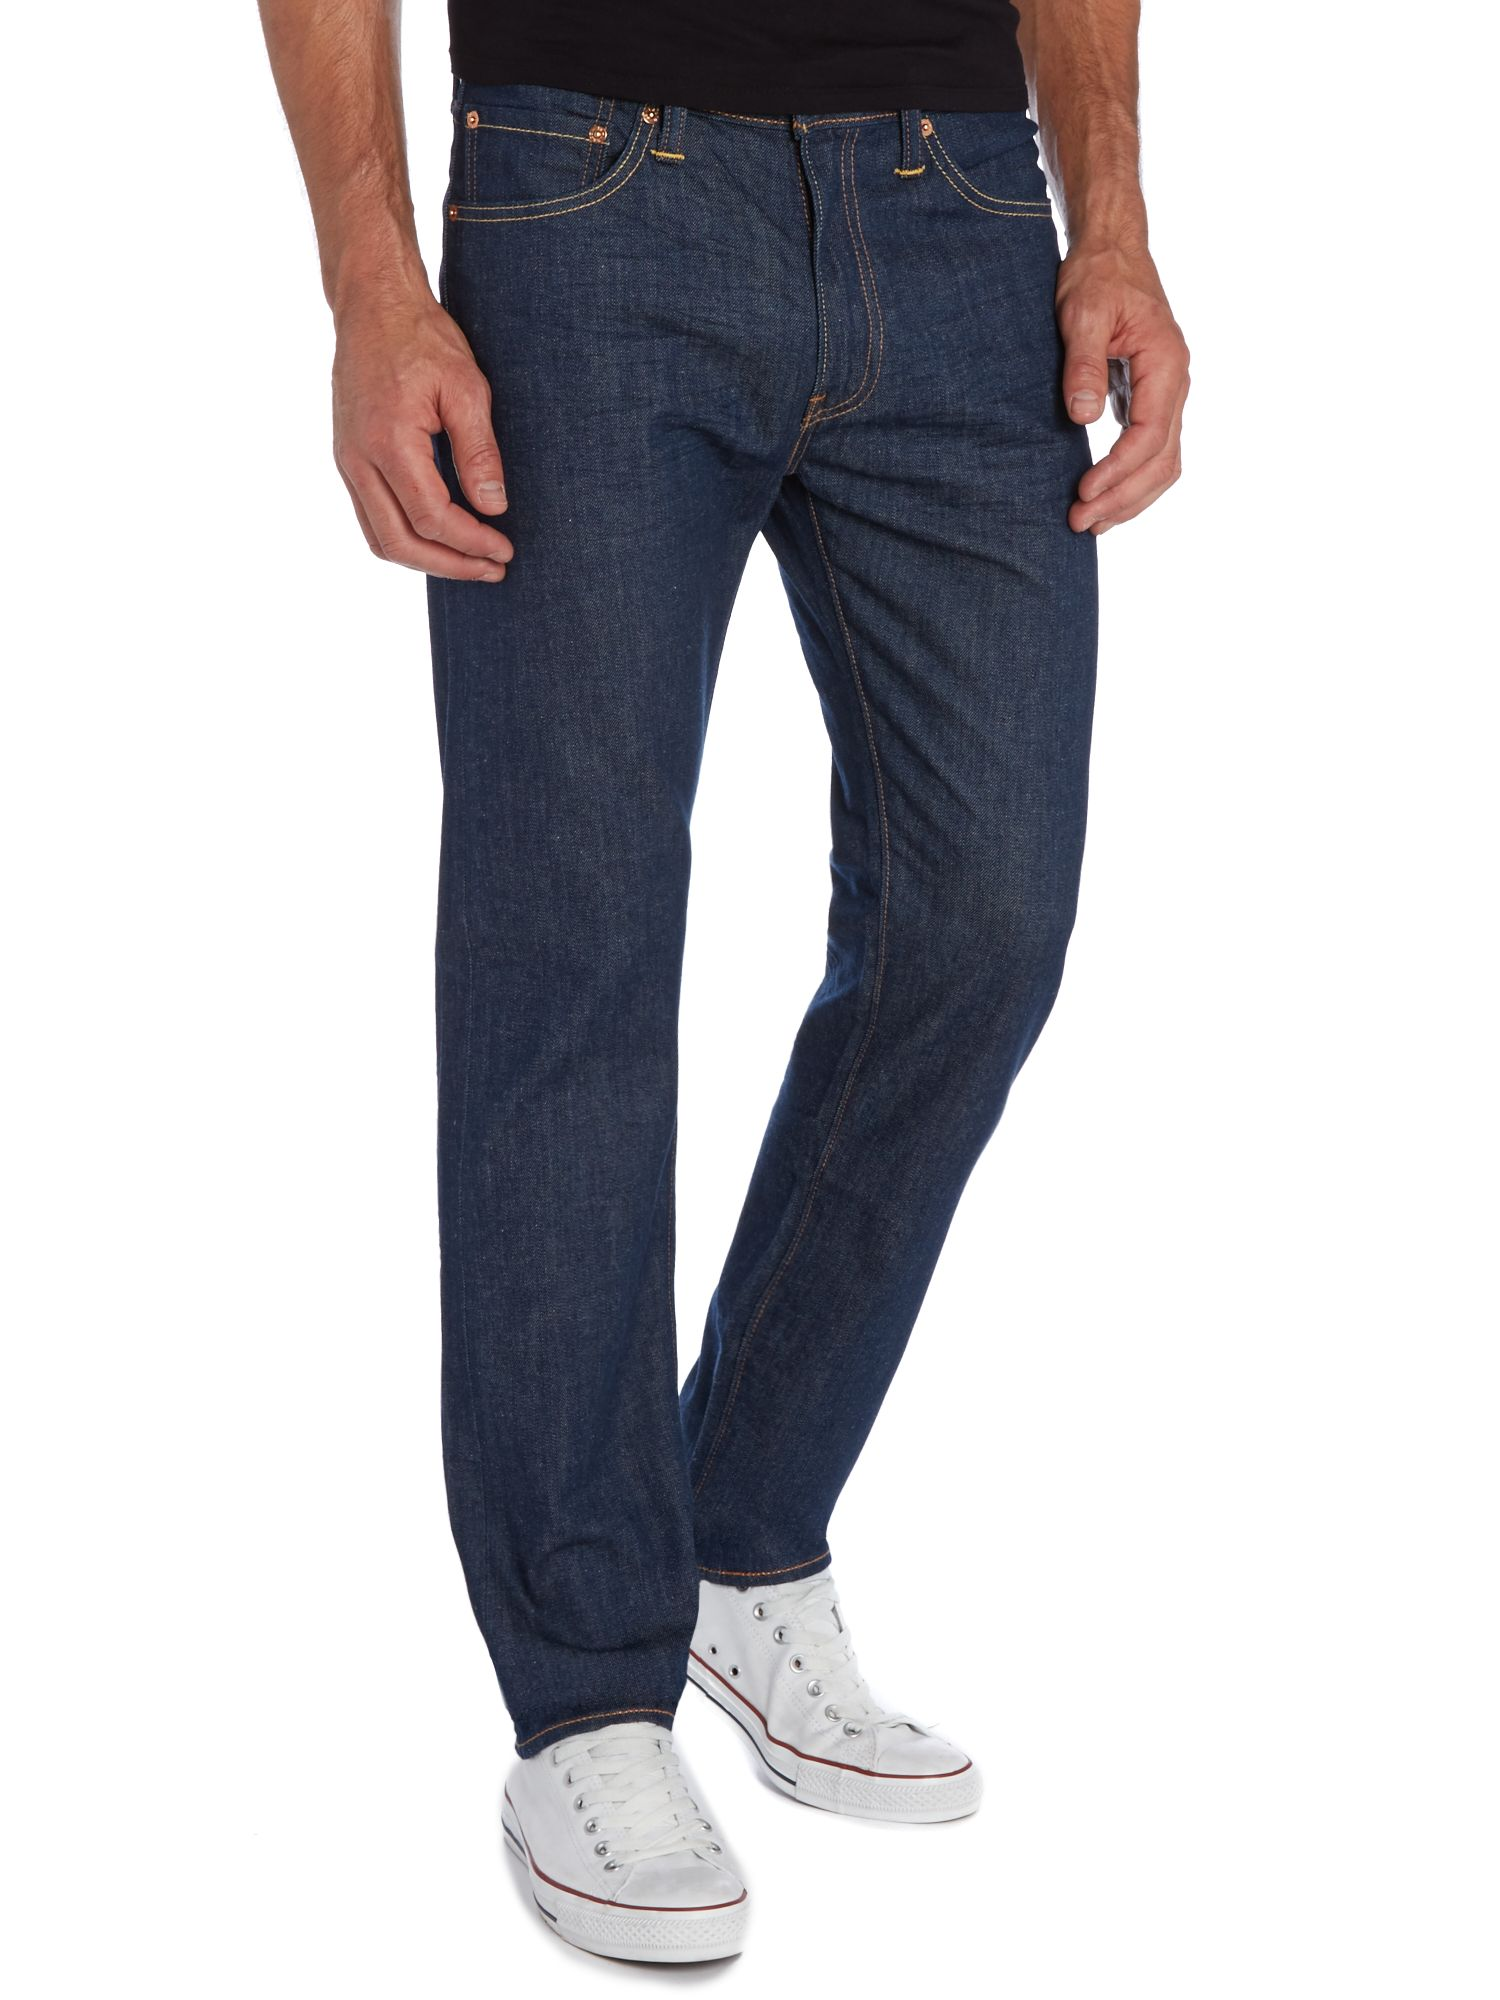 Tapered 508 regular jeans